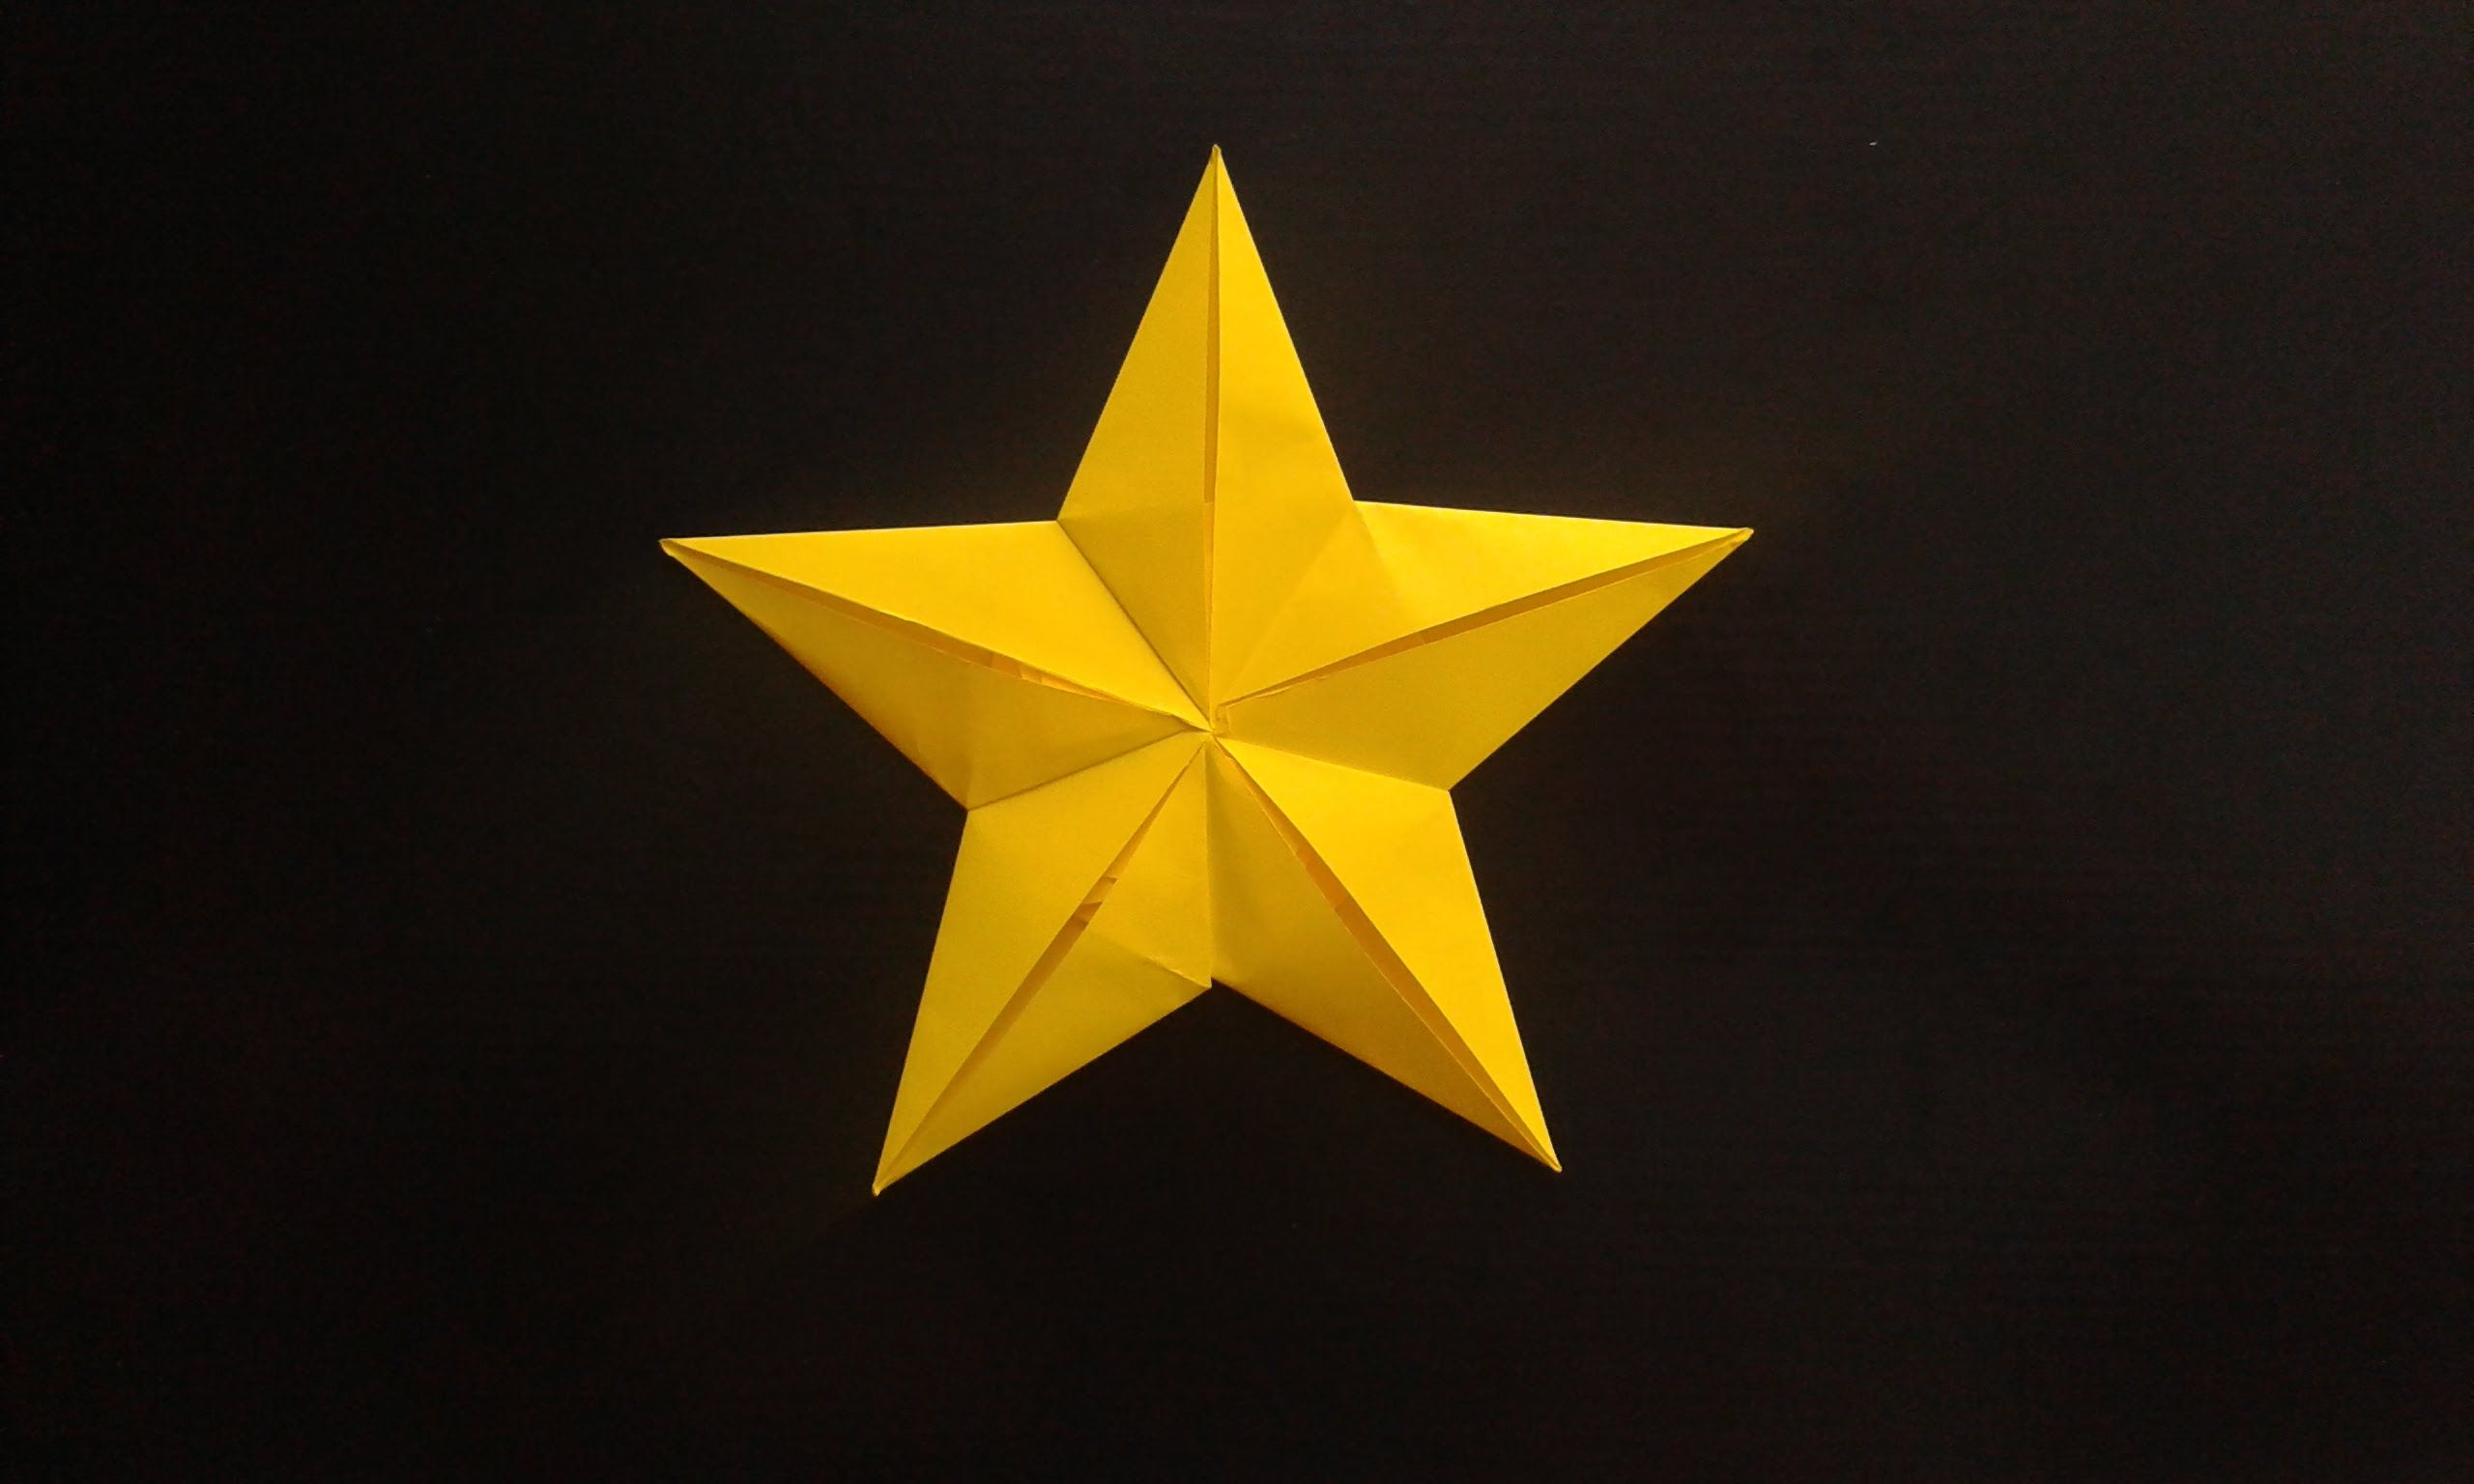 How To Make A Paper Pentagonal Star Origami